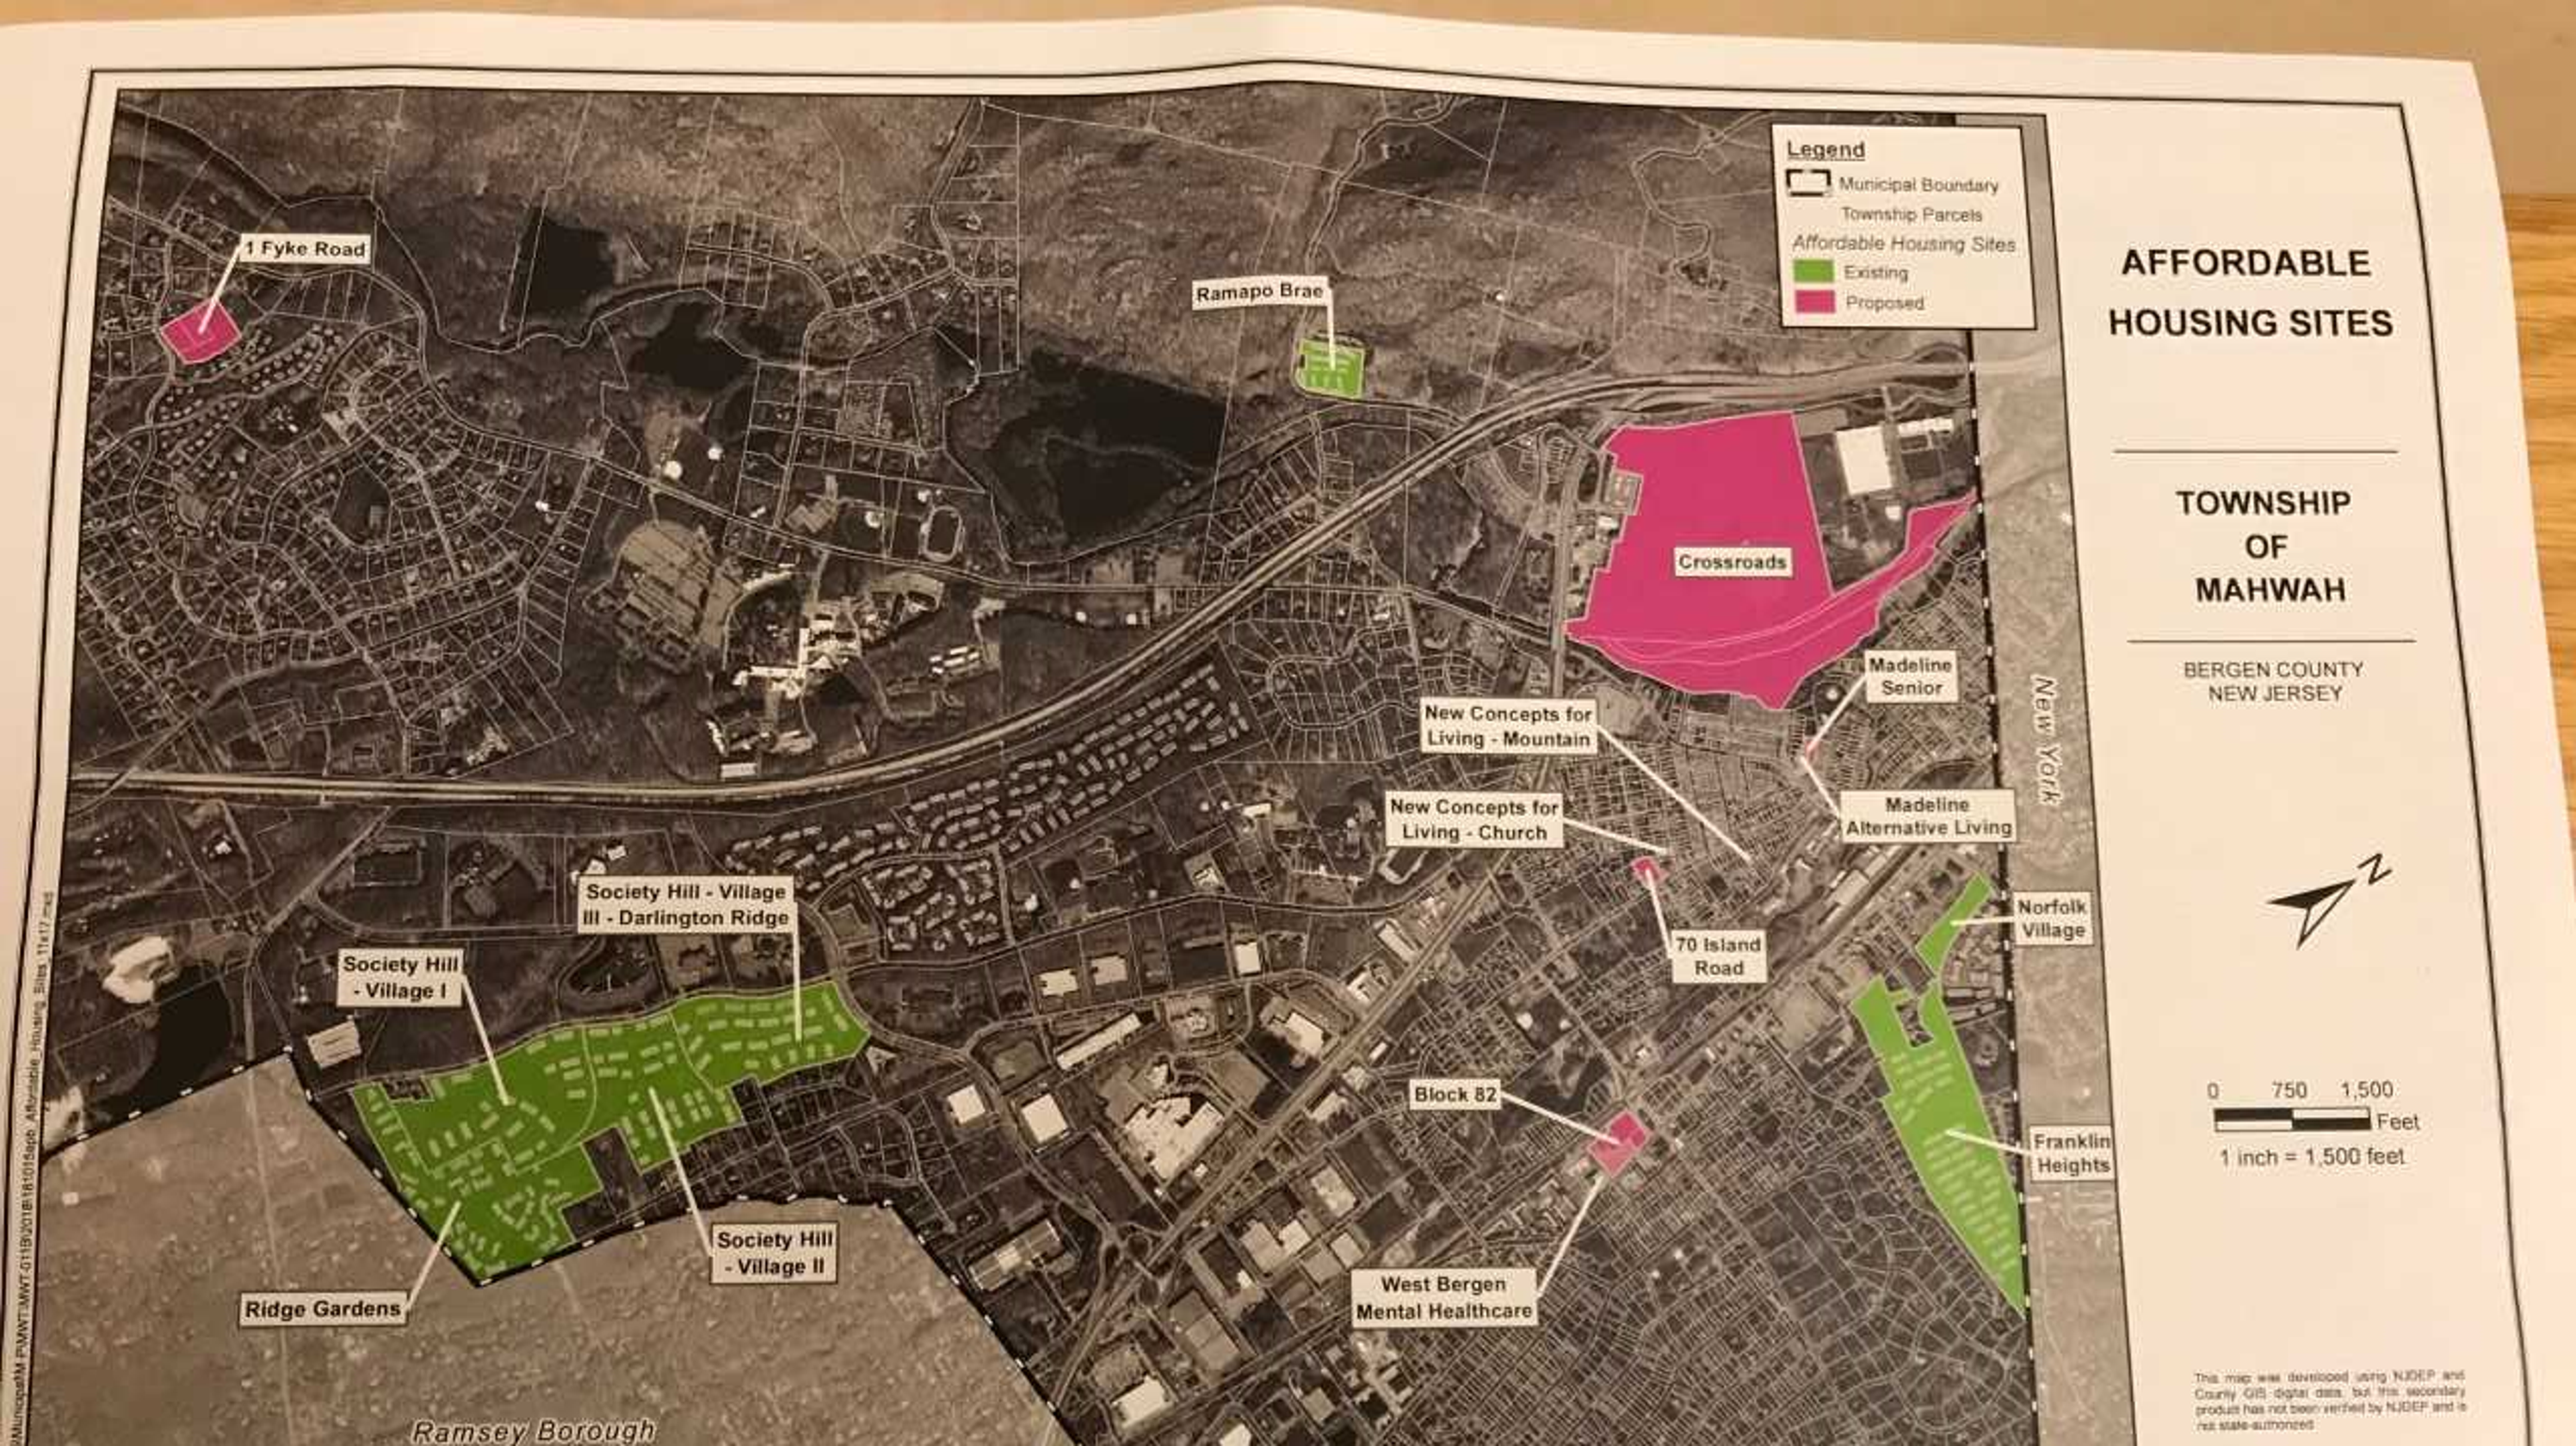 Mahwah NJ planners approve plan for affordable housing sites